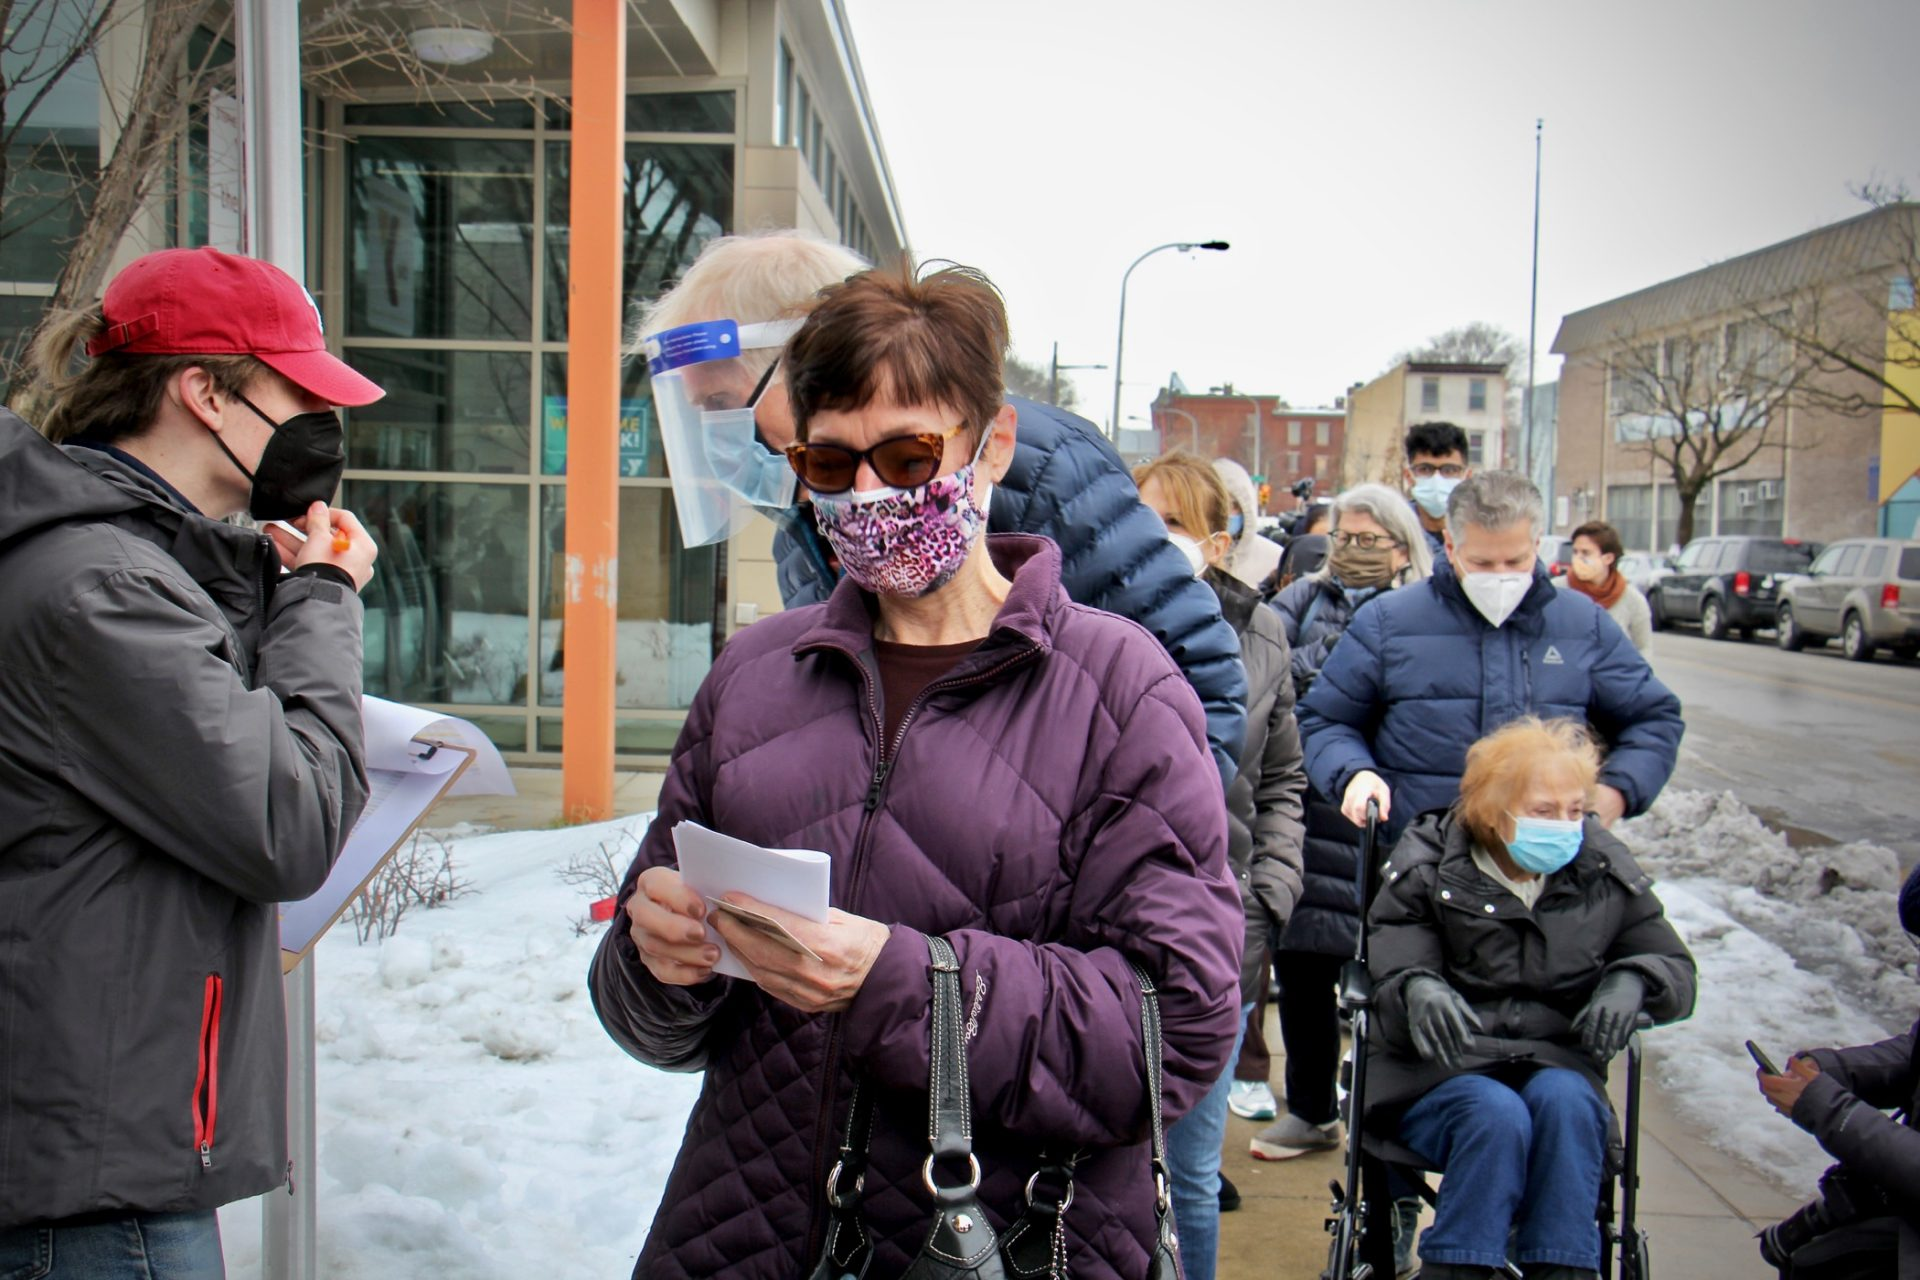 Judy Salisbury, 70, of Rittenhouse Square (center) signed up on line to get her COVID-19 vaccination at Philadelphia's first standing city-run COVID-19 vaccination clinic, which opened at the Martin Luther King Jr. Older Adult Center on Cecil B. Moore Avenue, Tuesday, Feb. 23, 2021.